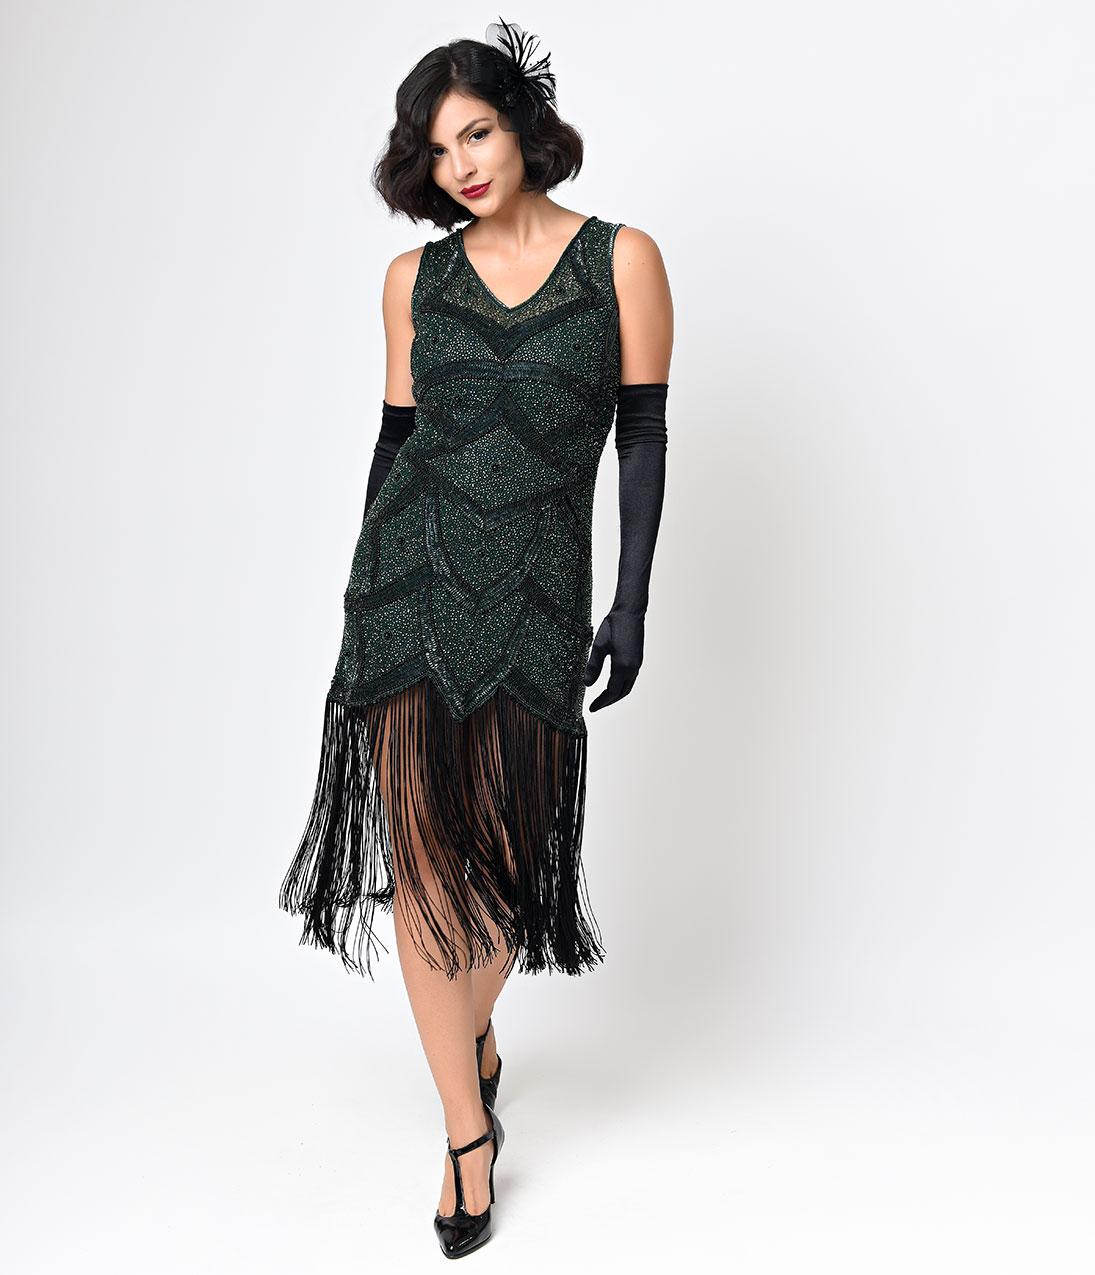 Flapper Costumes 's style flapper costumes. Find the perfect Flapper Costume or flapper dress from the widest selection on the web. Great prices and FAST SHIPPING. From kids to plus size flappers and even gangster costumes, we have it all.